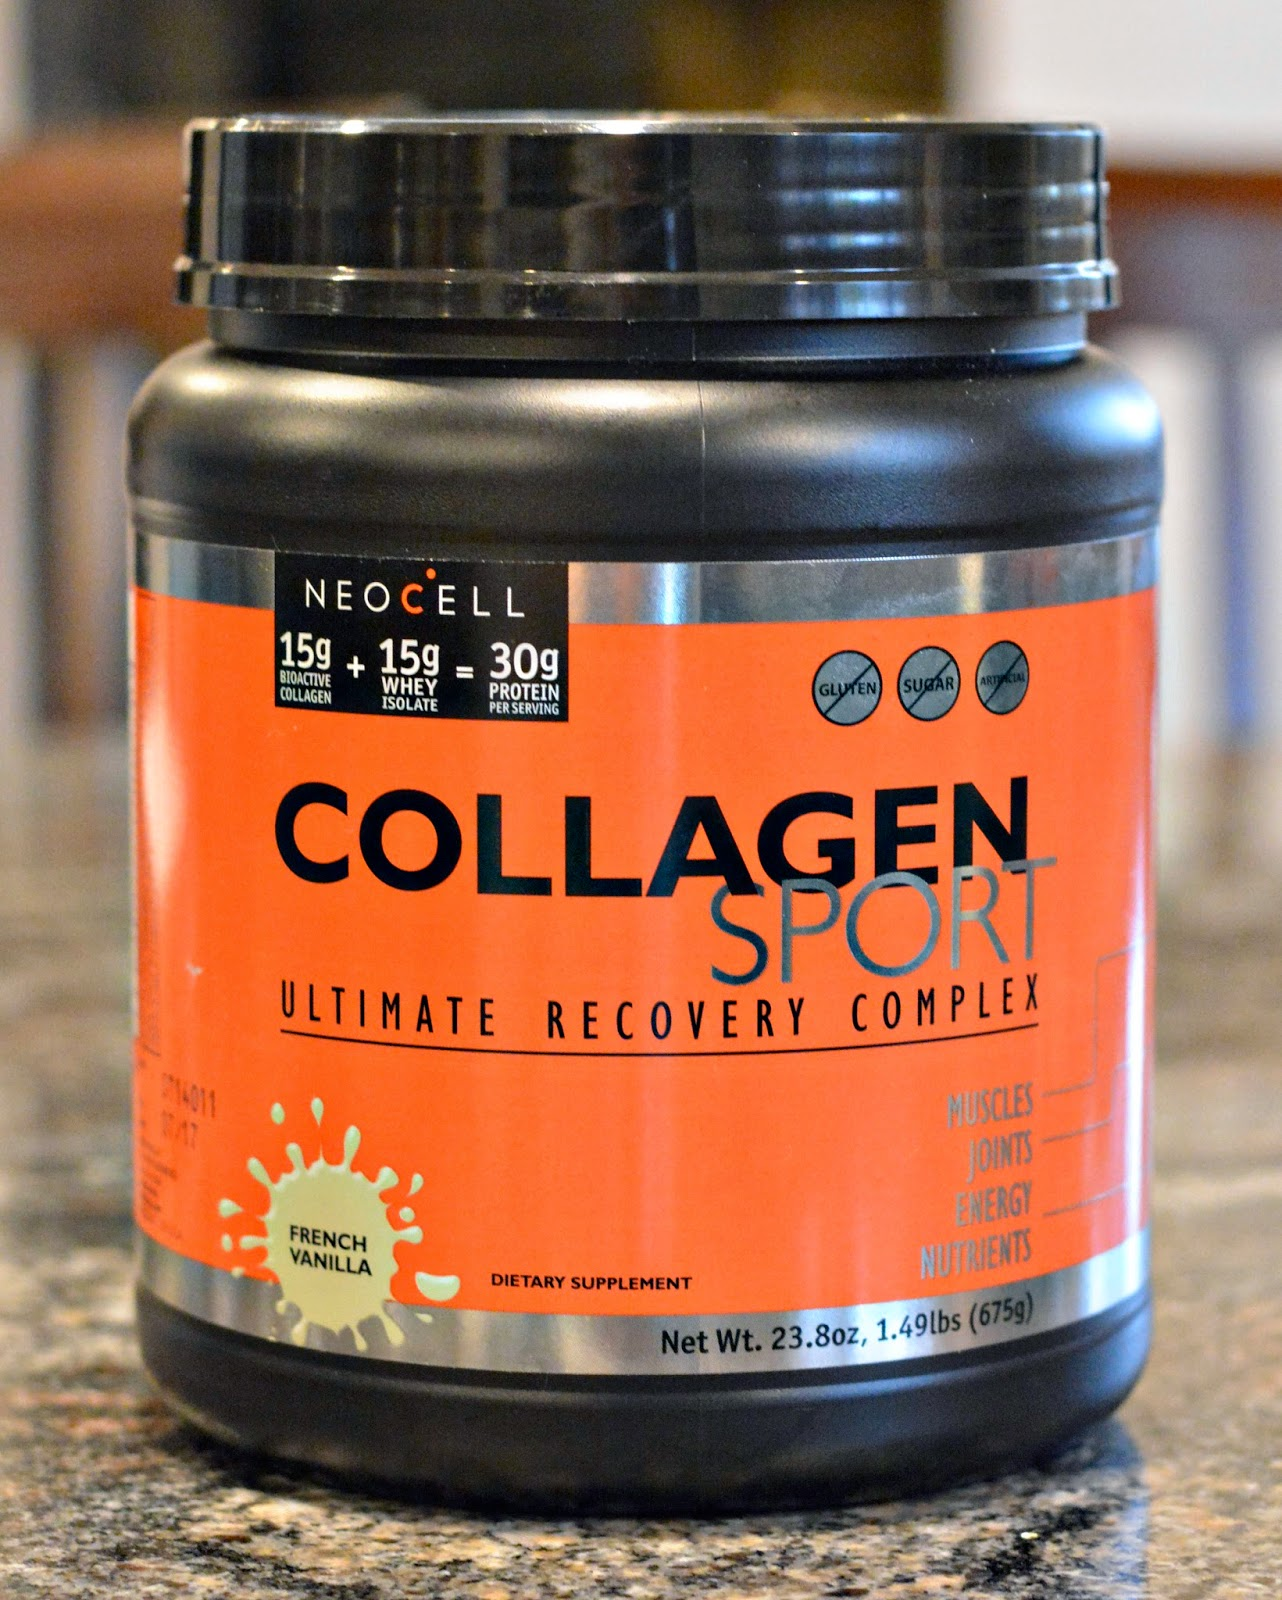 NeoCell Collagen Sport